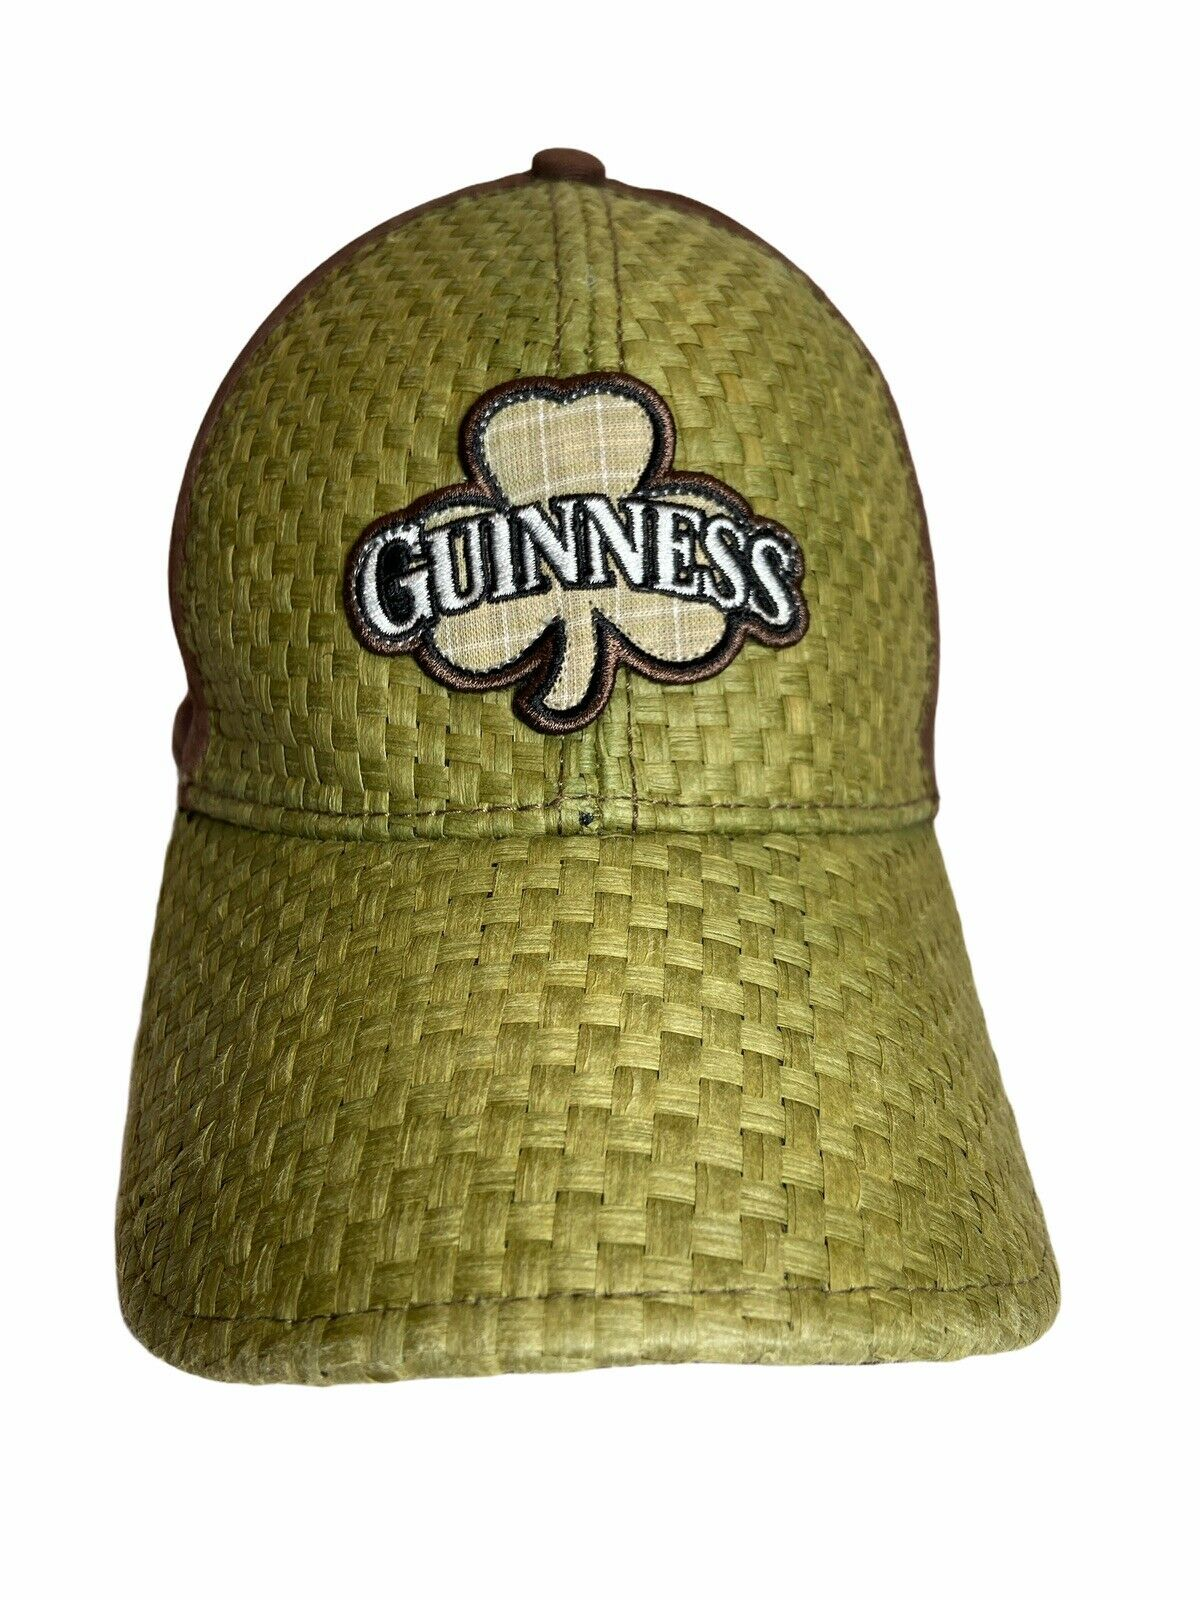 Guinness Beer Woven Straw Cap Hat OS - image 4